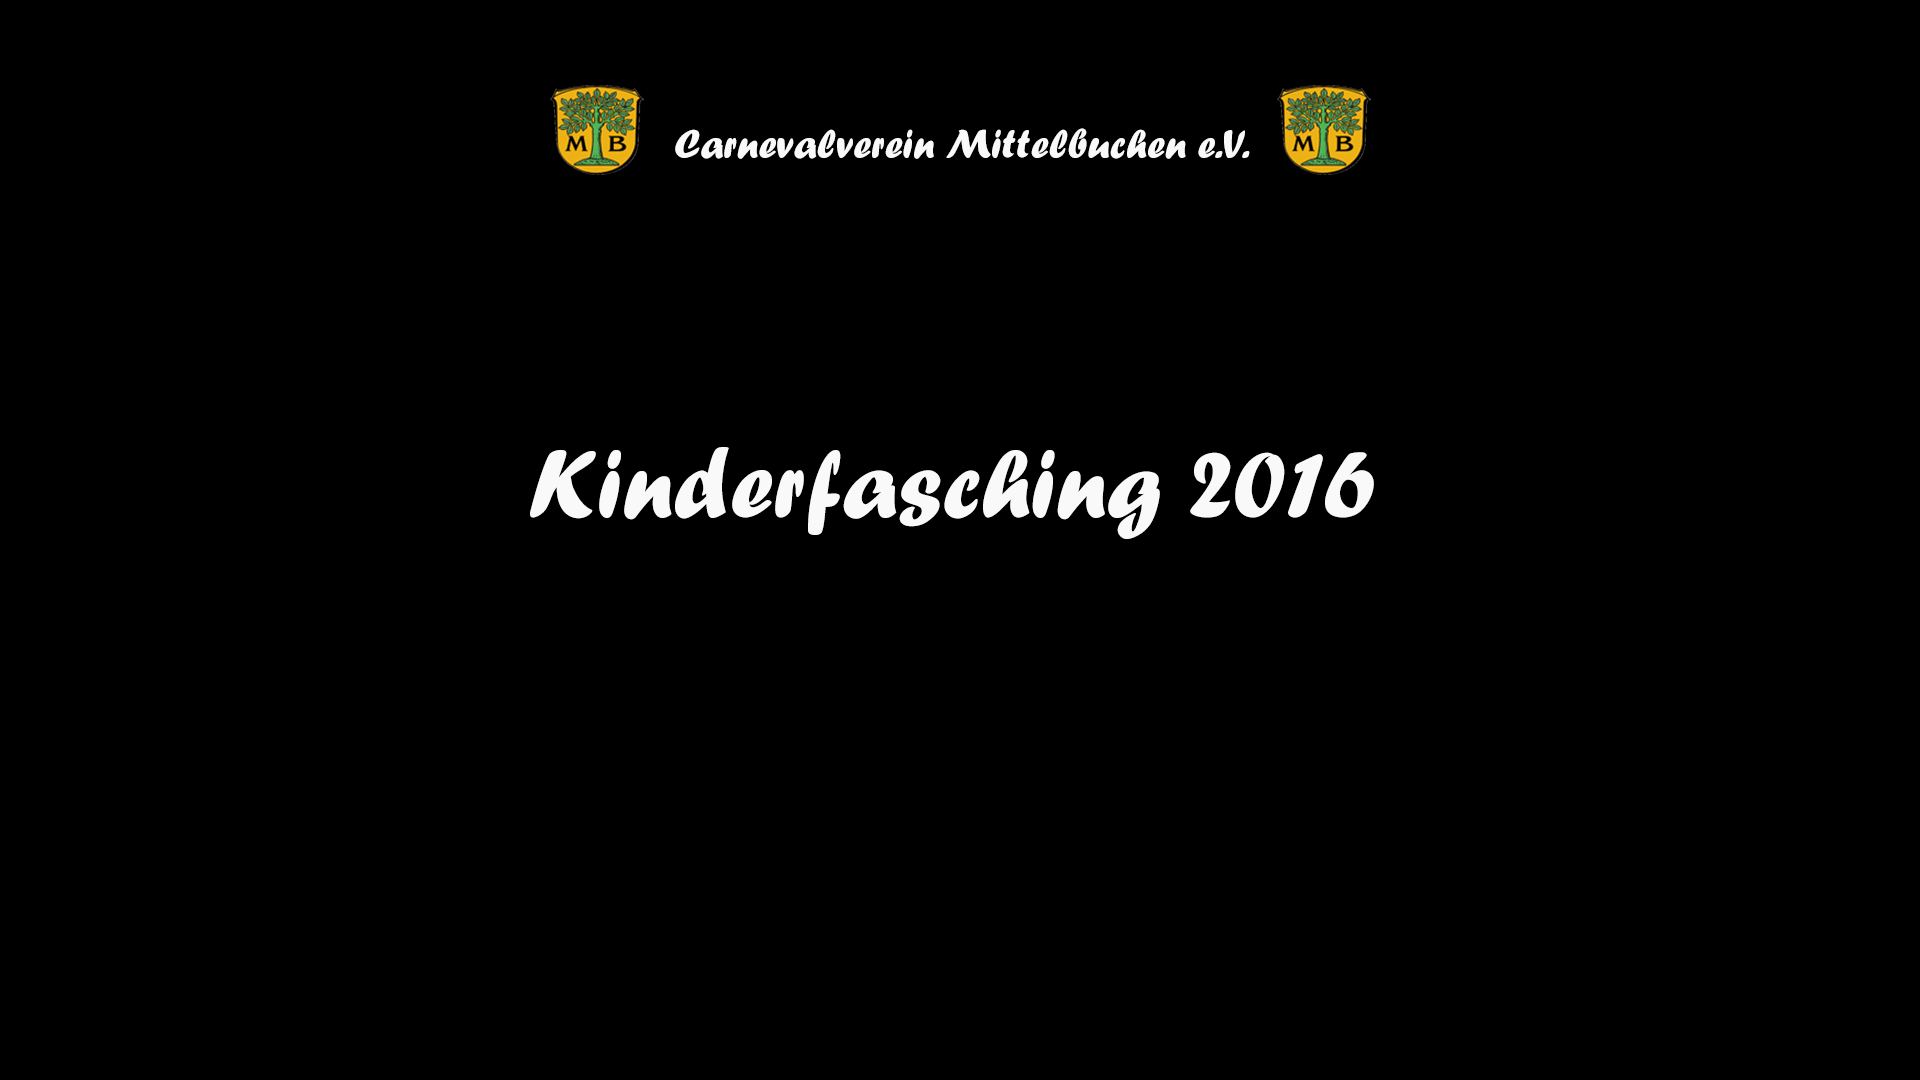 Kinderfasching 201